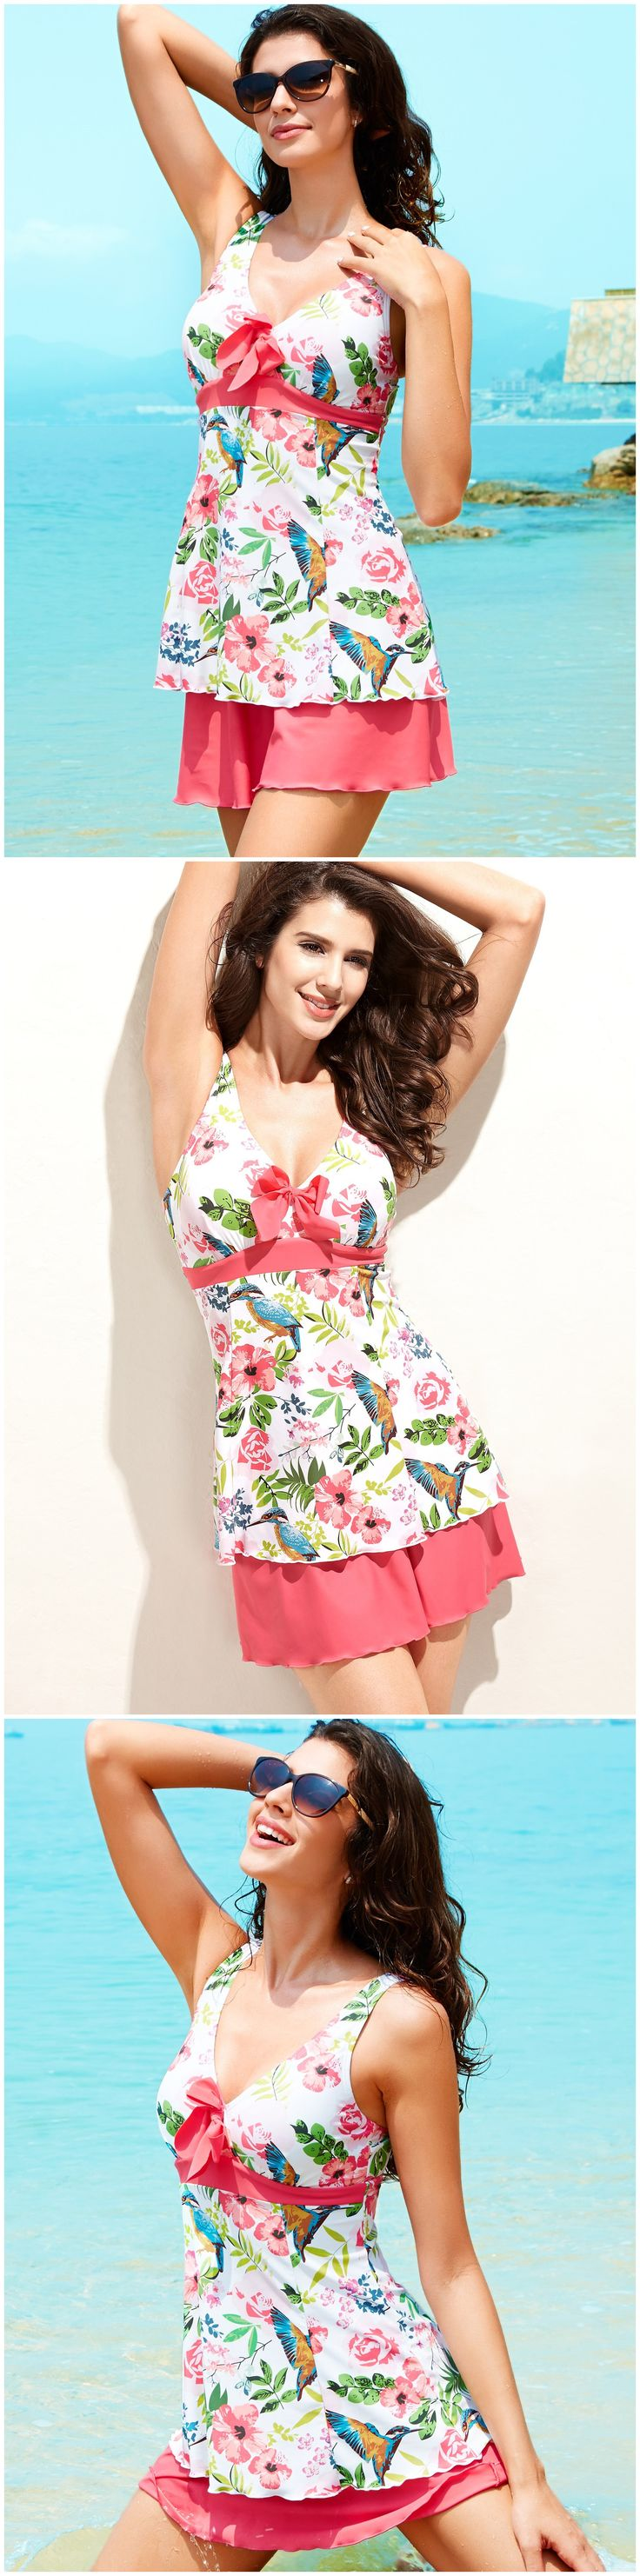 Summer Charming Sexy Floral Print Conjoined Swimsuit http://www.amazon.co.uk/Womens-Padded-Swimsuit-Swimwear-Multi-color-2/dp/B00K8RGDFQ/ref=sr_1_1?m=AWH6KY5XWWO07&s=merchant-items&ie=UTF8&qid=1432005199&sr=1-1